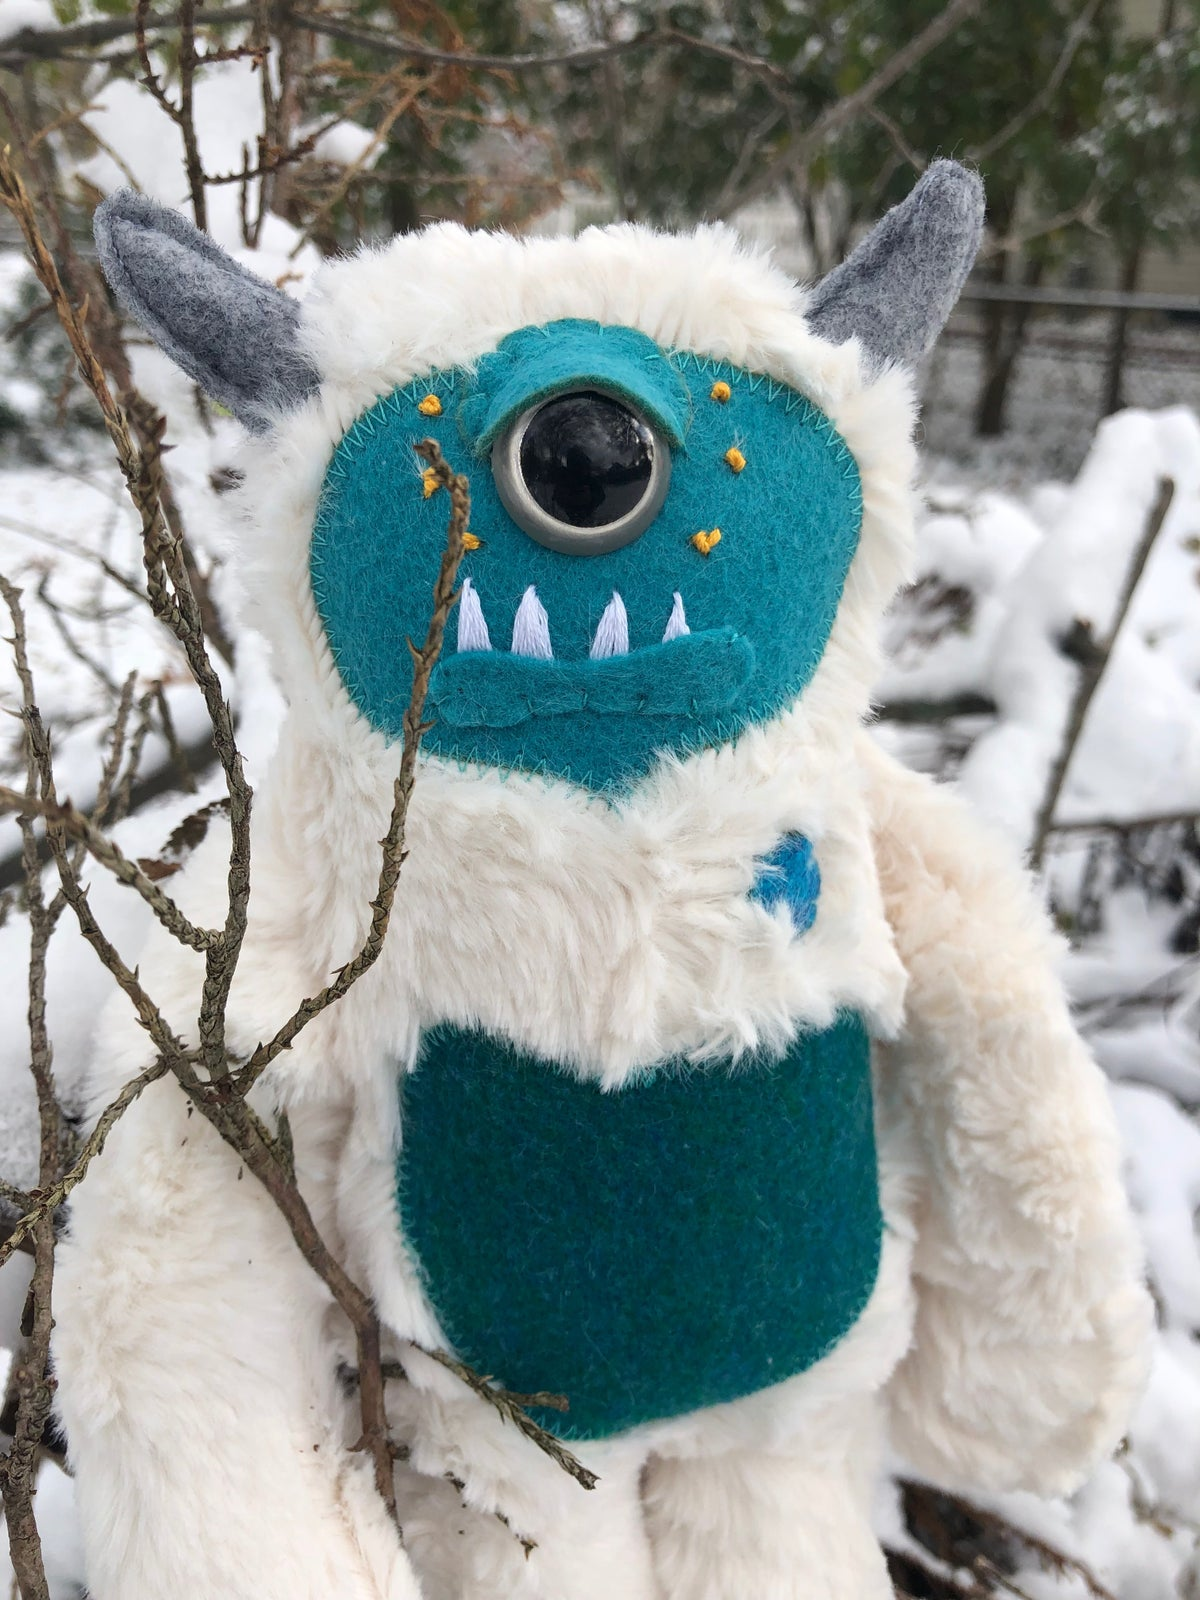 Image of Uler the Snow Monster